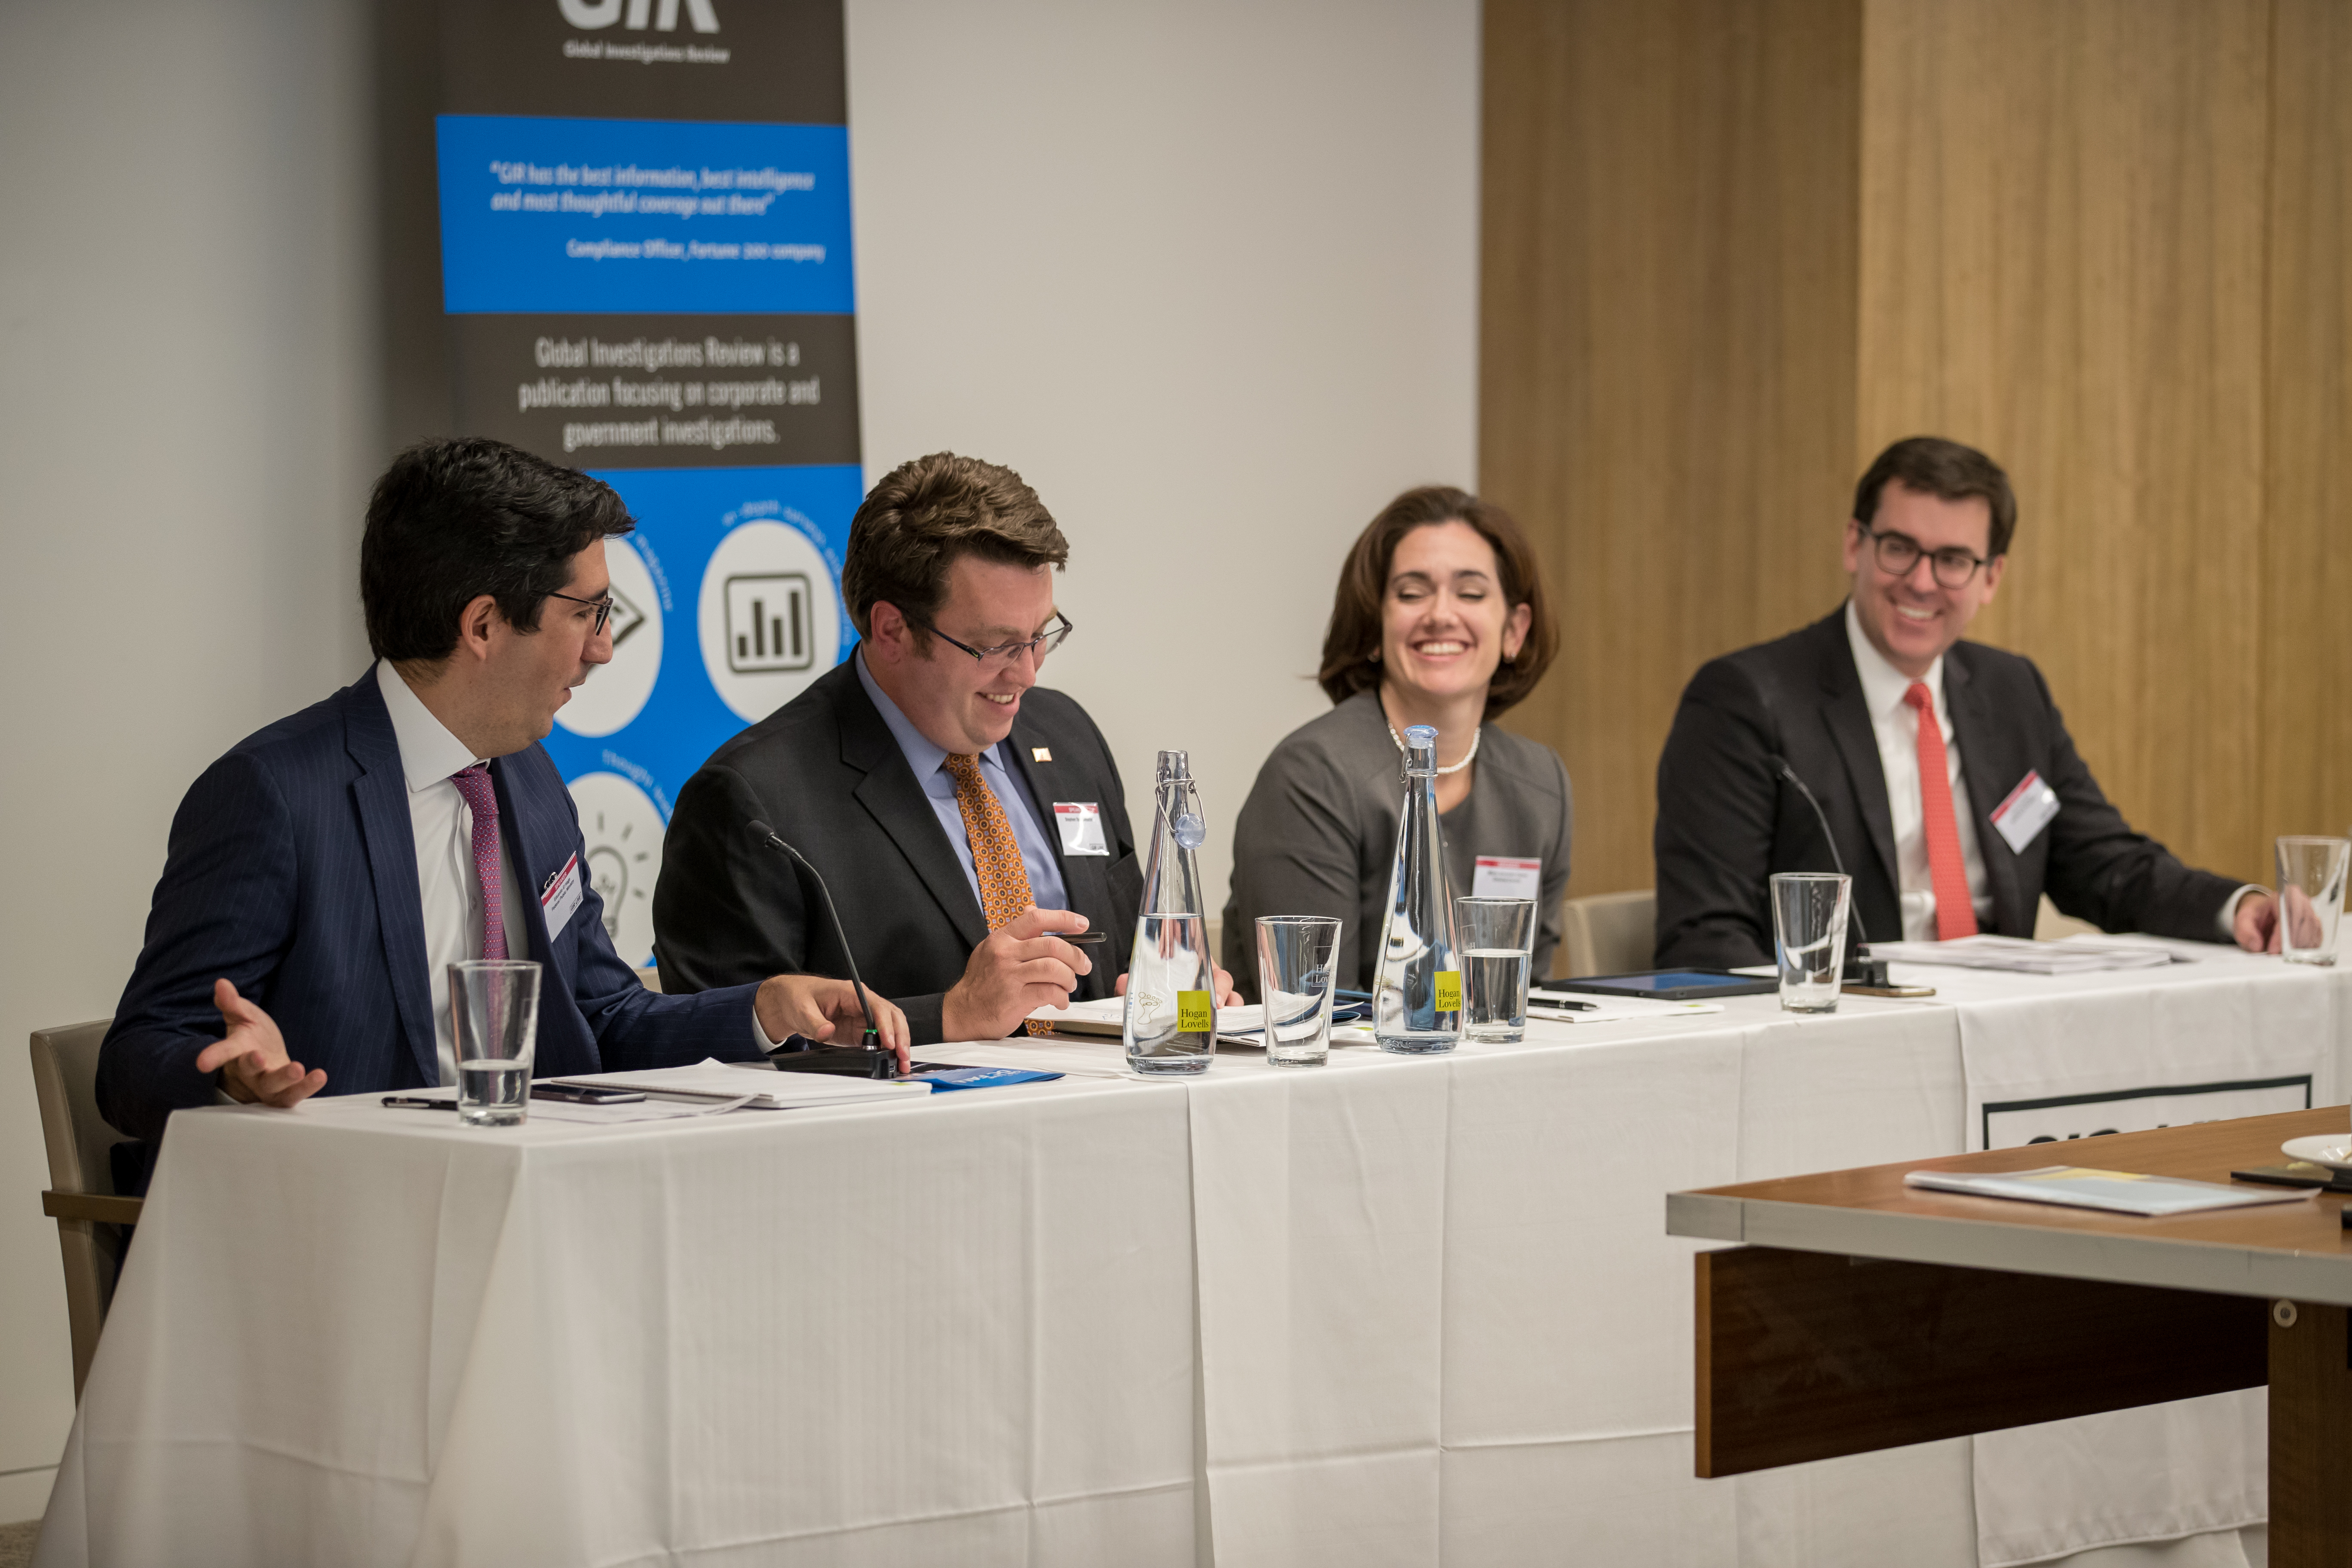 GIR Live: Prosecutors worldwide are getting to know each other